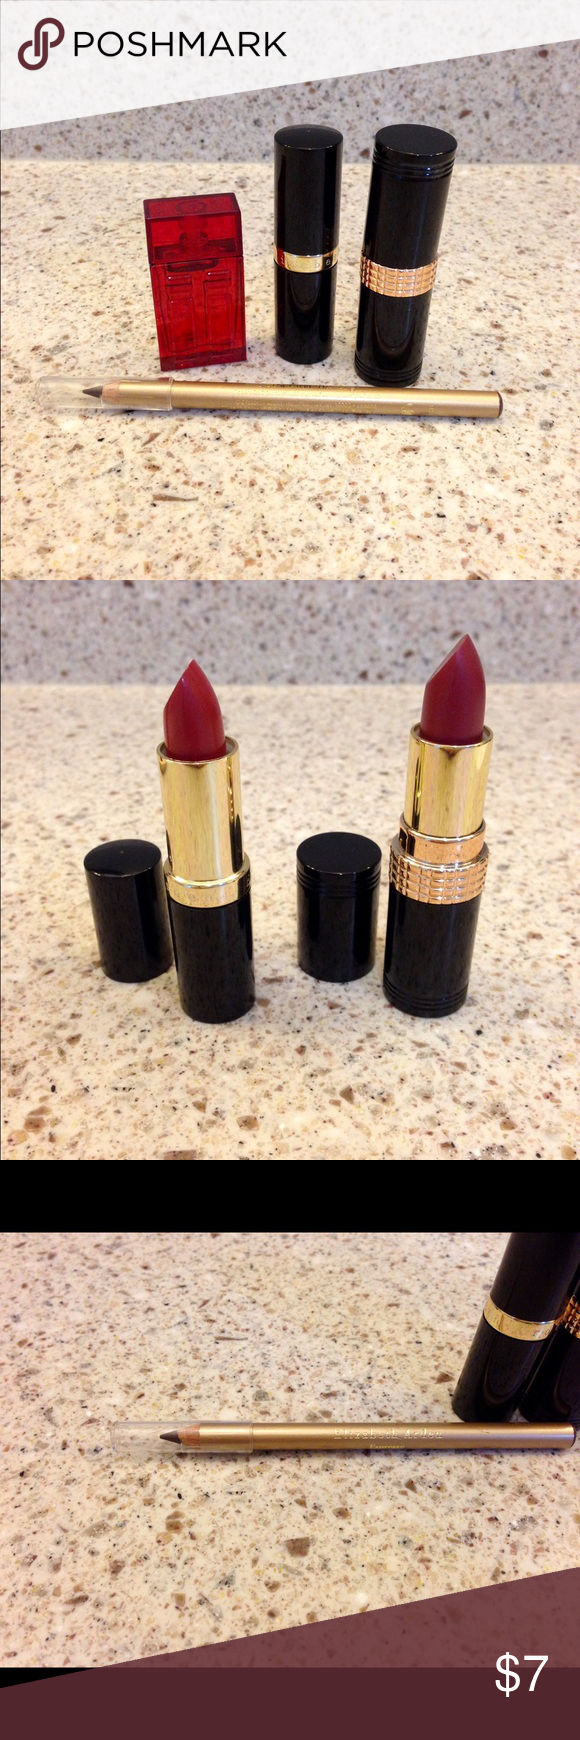 Elizabeth Arden Bundle! All brand new, nothing used. Only opened to show lipstick color.   Two lipsticks- cassis 24 & wild winterberry 56  One Eye pencil- espresso   One red door perfume- .16 oz  All for one low price. Open to offers! Elizabeth Arden Makeup